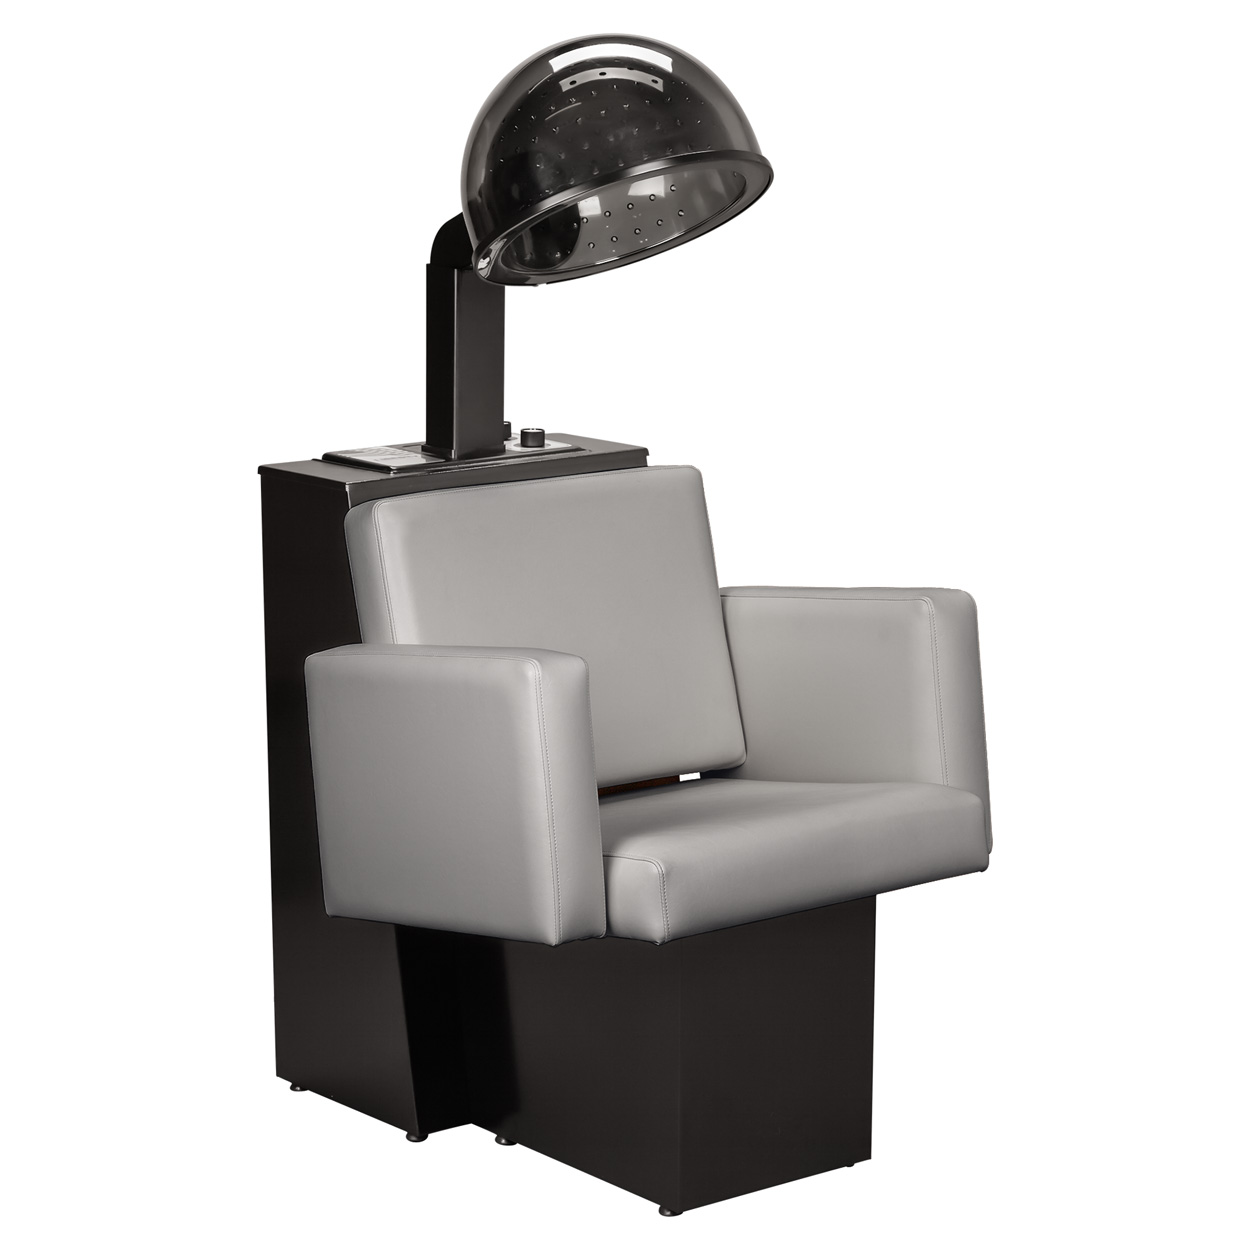 Marvelous Pibbs 3469 Cosmo Salon Hooded Hair Dryer With Chair Caraccident5 Cool Chair Designs And Ideas Caraccident5Info